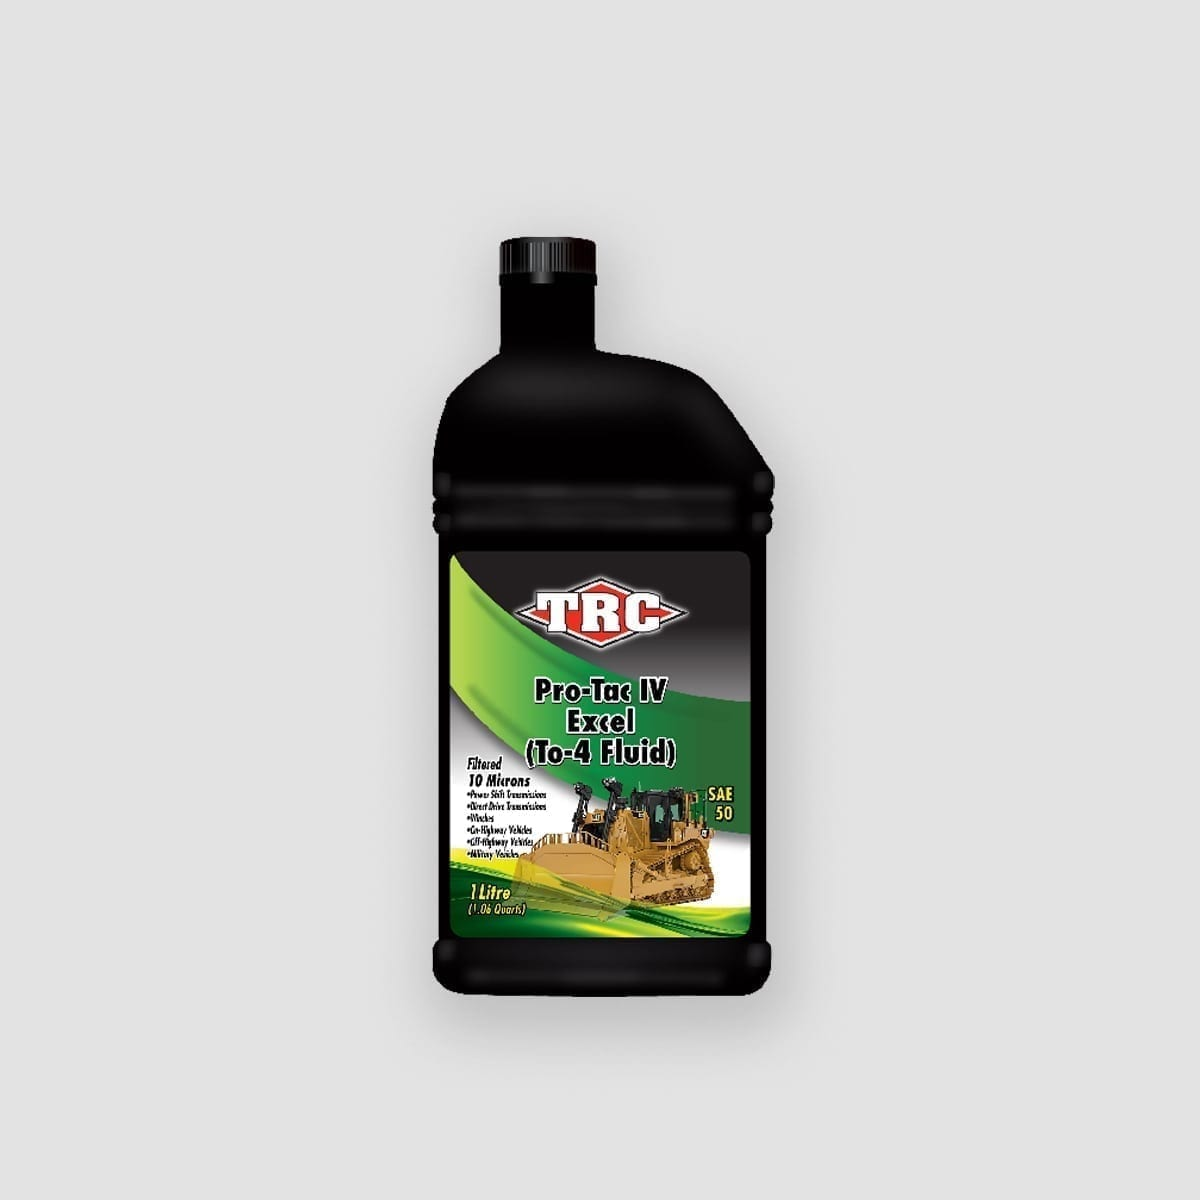 trc-pro-tac-iv-excel-sae-50-02-french